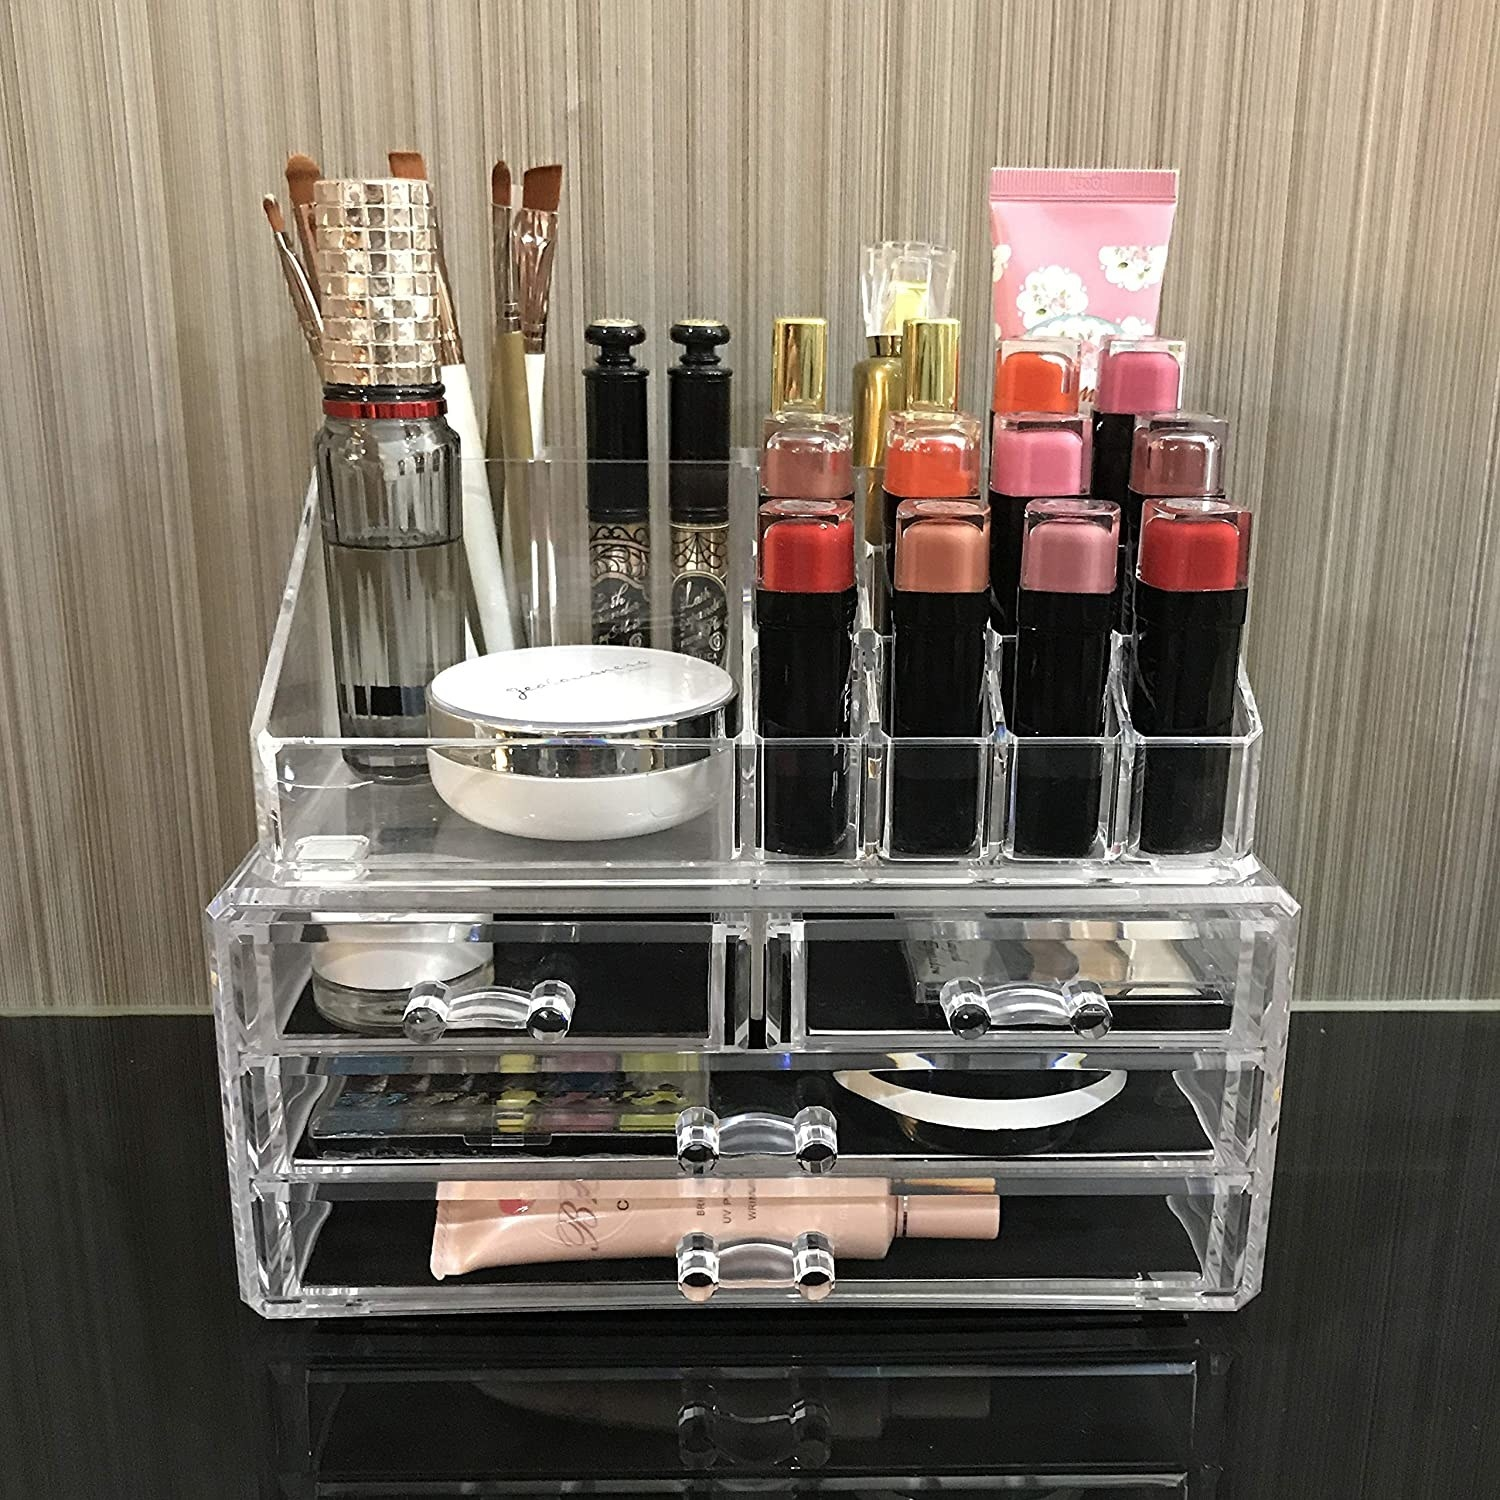 the organizer filled with makeup